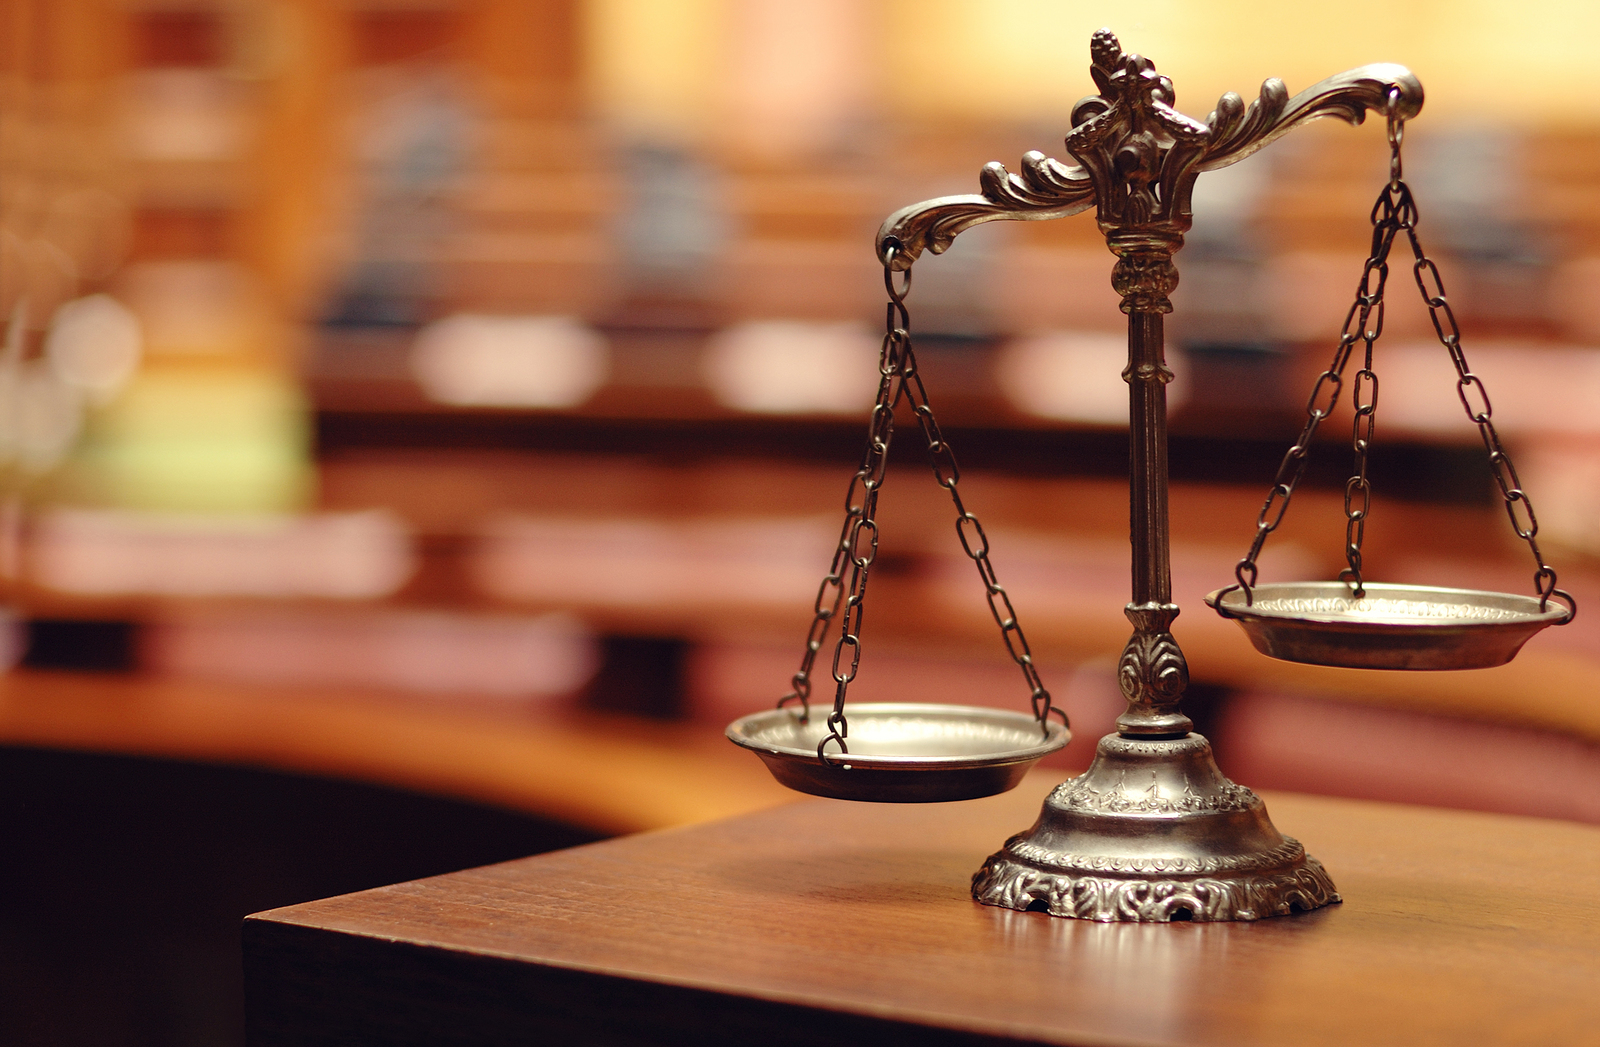 bigstock-Decorative-Scales-Of-Justice-46278739